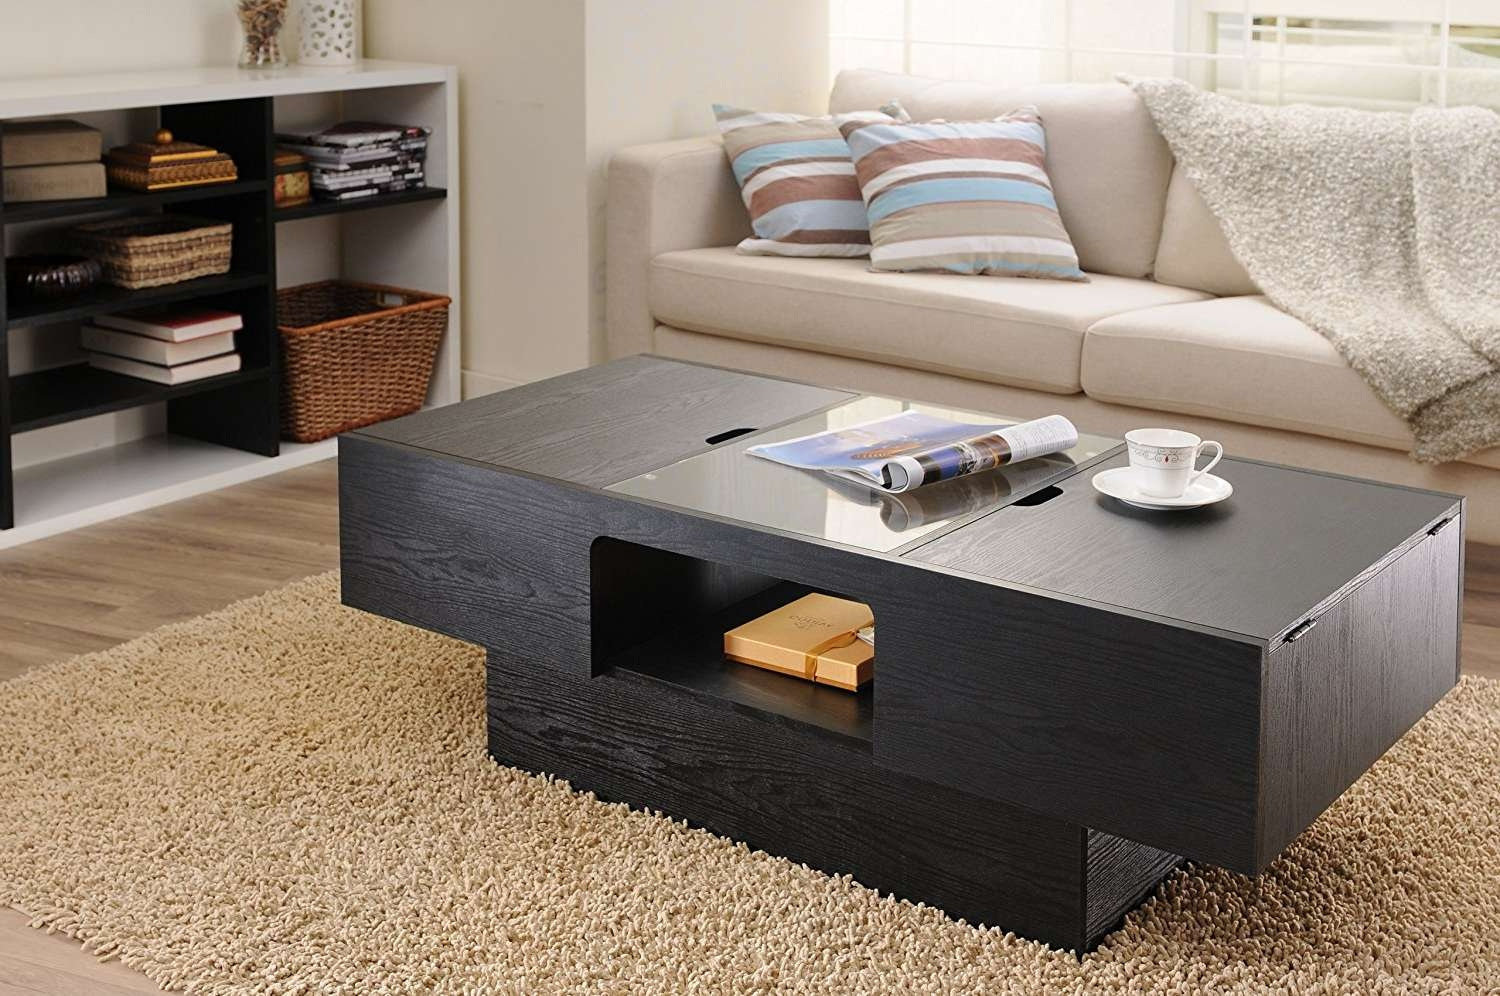 Coffee Tables : Beautiful Storage Small Storage Table Nesting Intended For 2017 Narrow Coffee Tables (View 10 of 20)